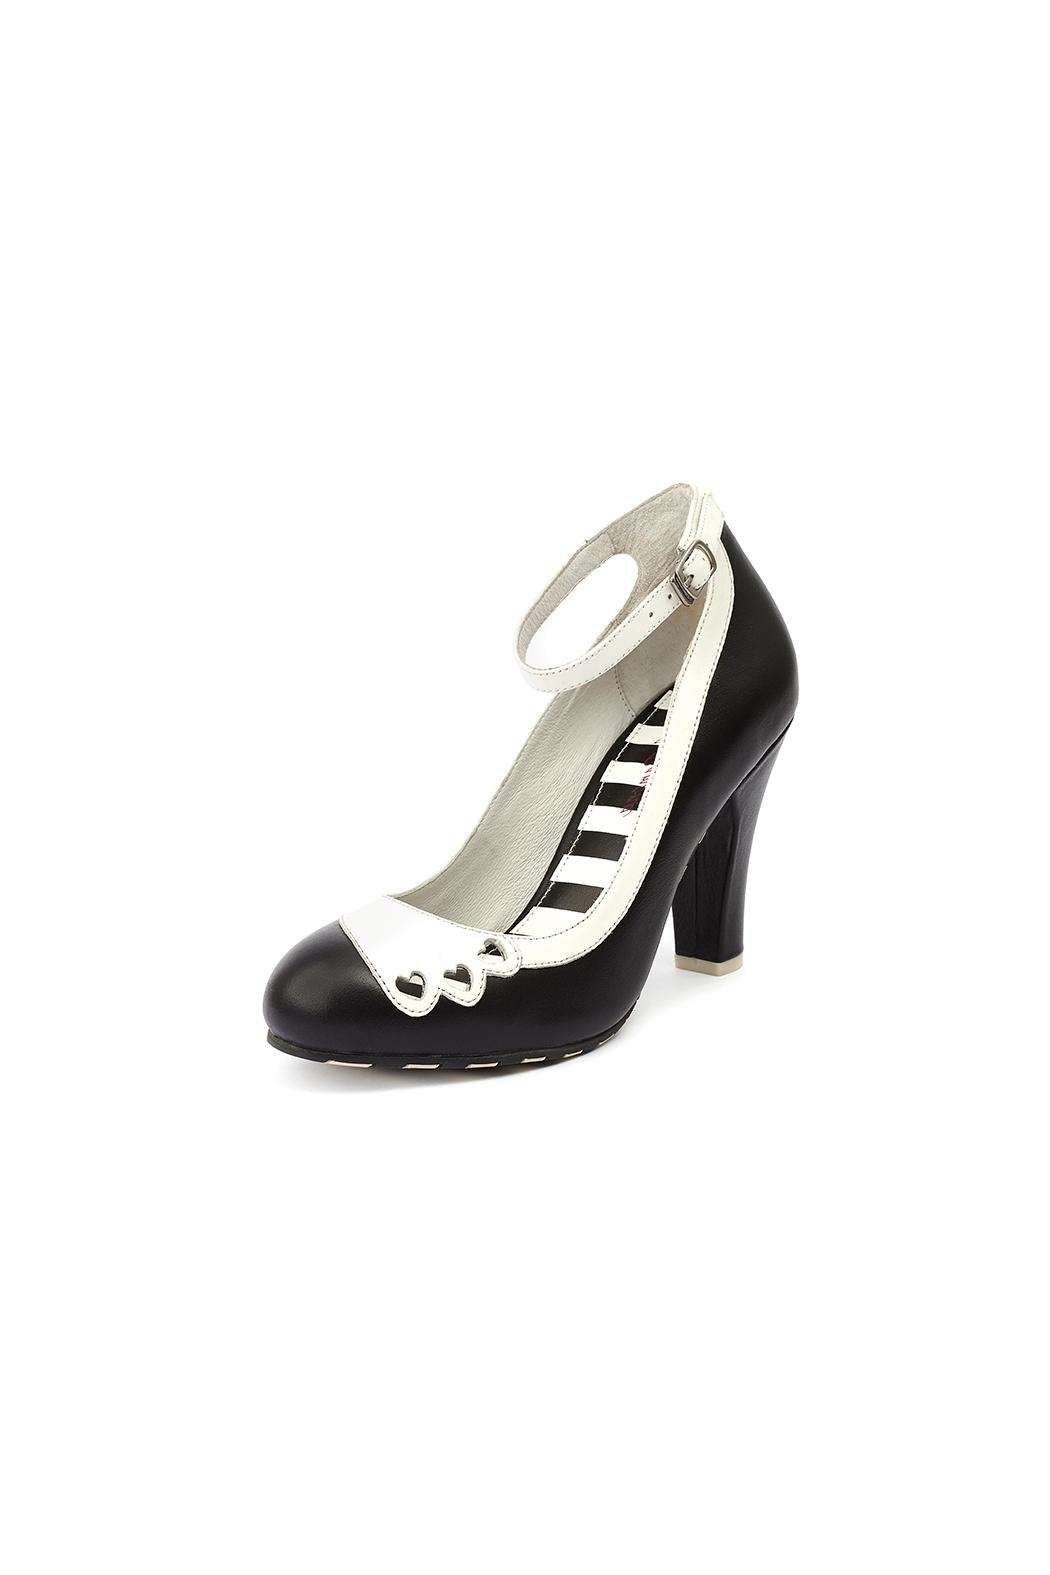 Lola Ramona June Hearts Black Pumps - Main Image